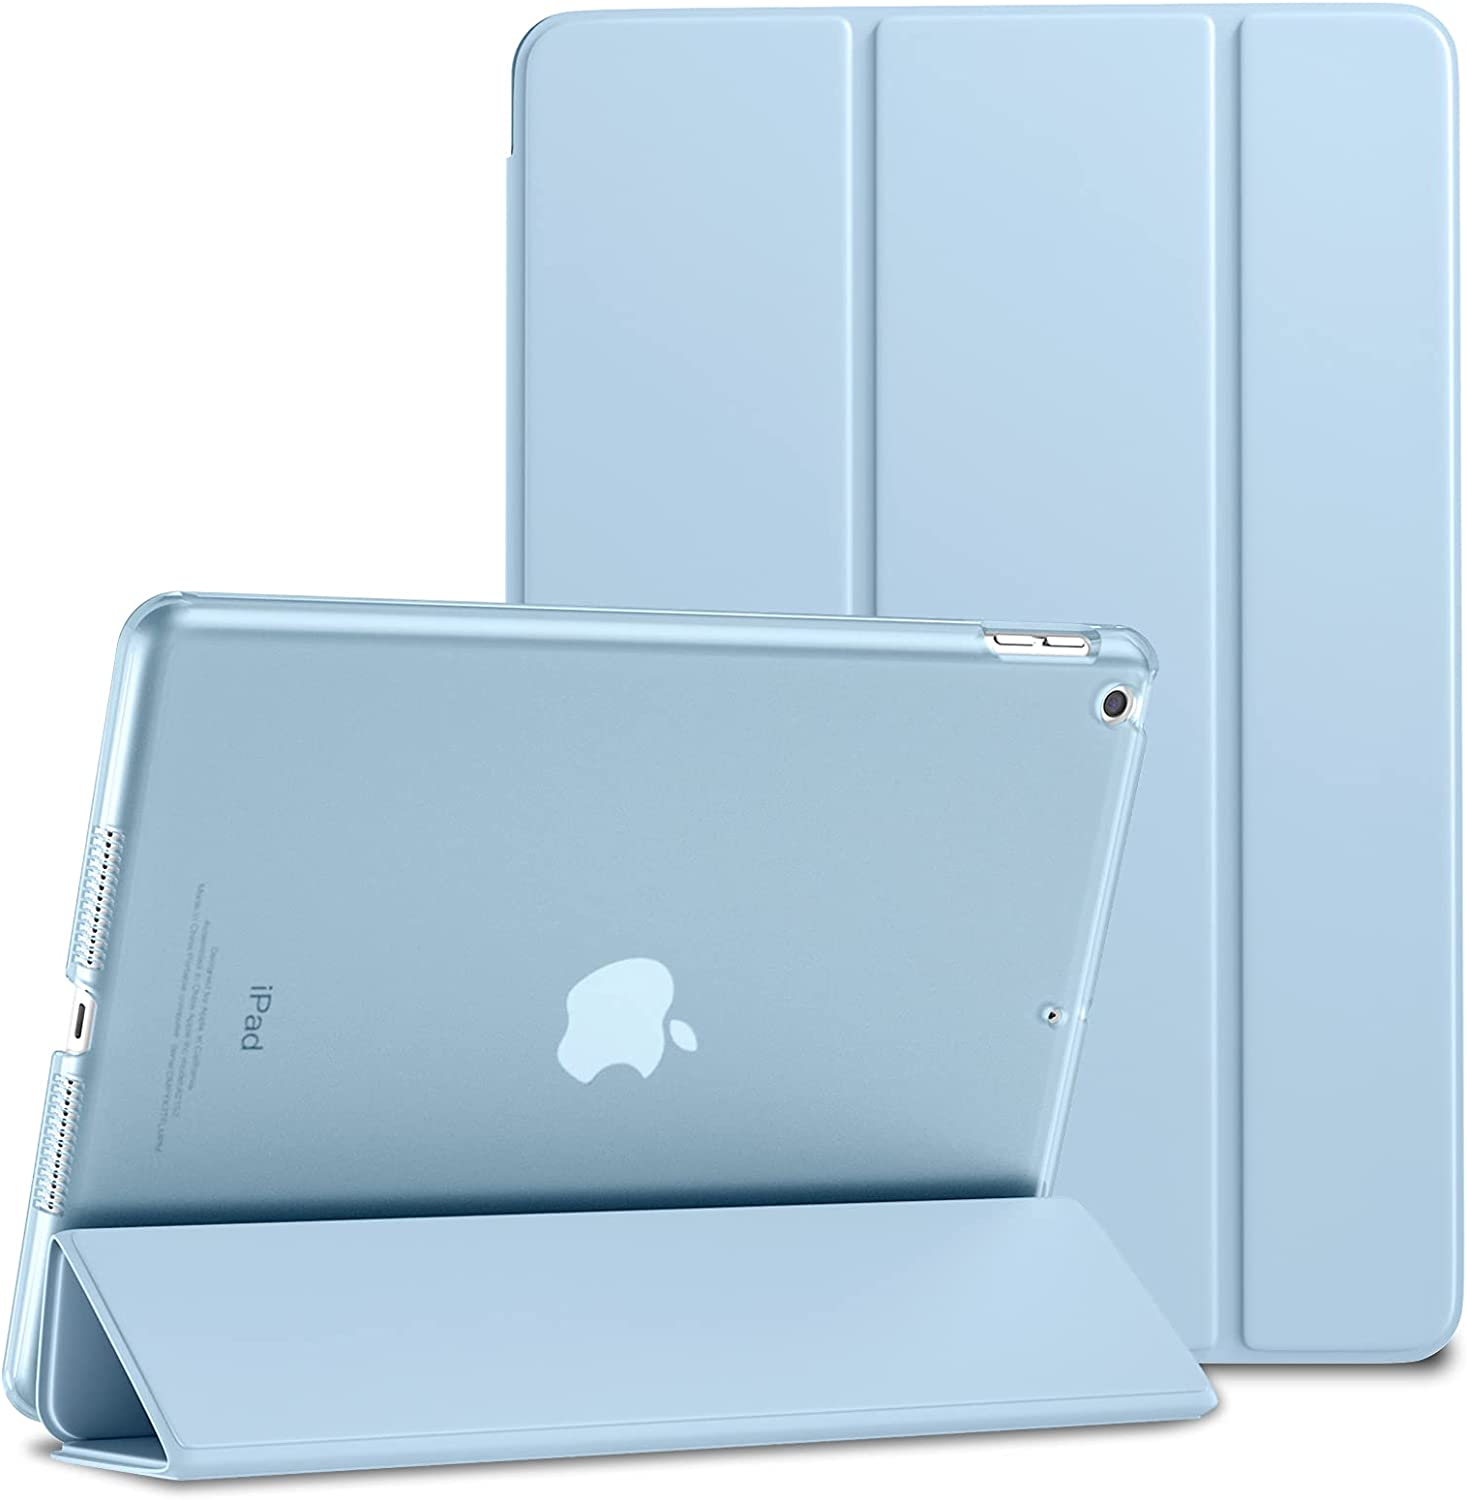 Mastten Case for iPad 8th/7th Generation Case 10.2 inch 2020/2019, Trifold Stand Hard PC Translucent Frosted Back Cover for iPad 10.2 inch Case, Auto Wake/Sleep, Sky Blue